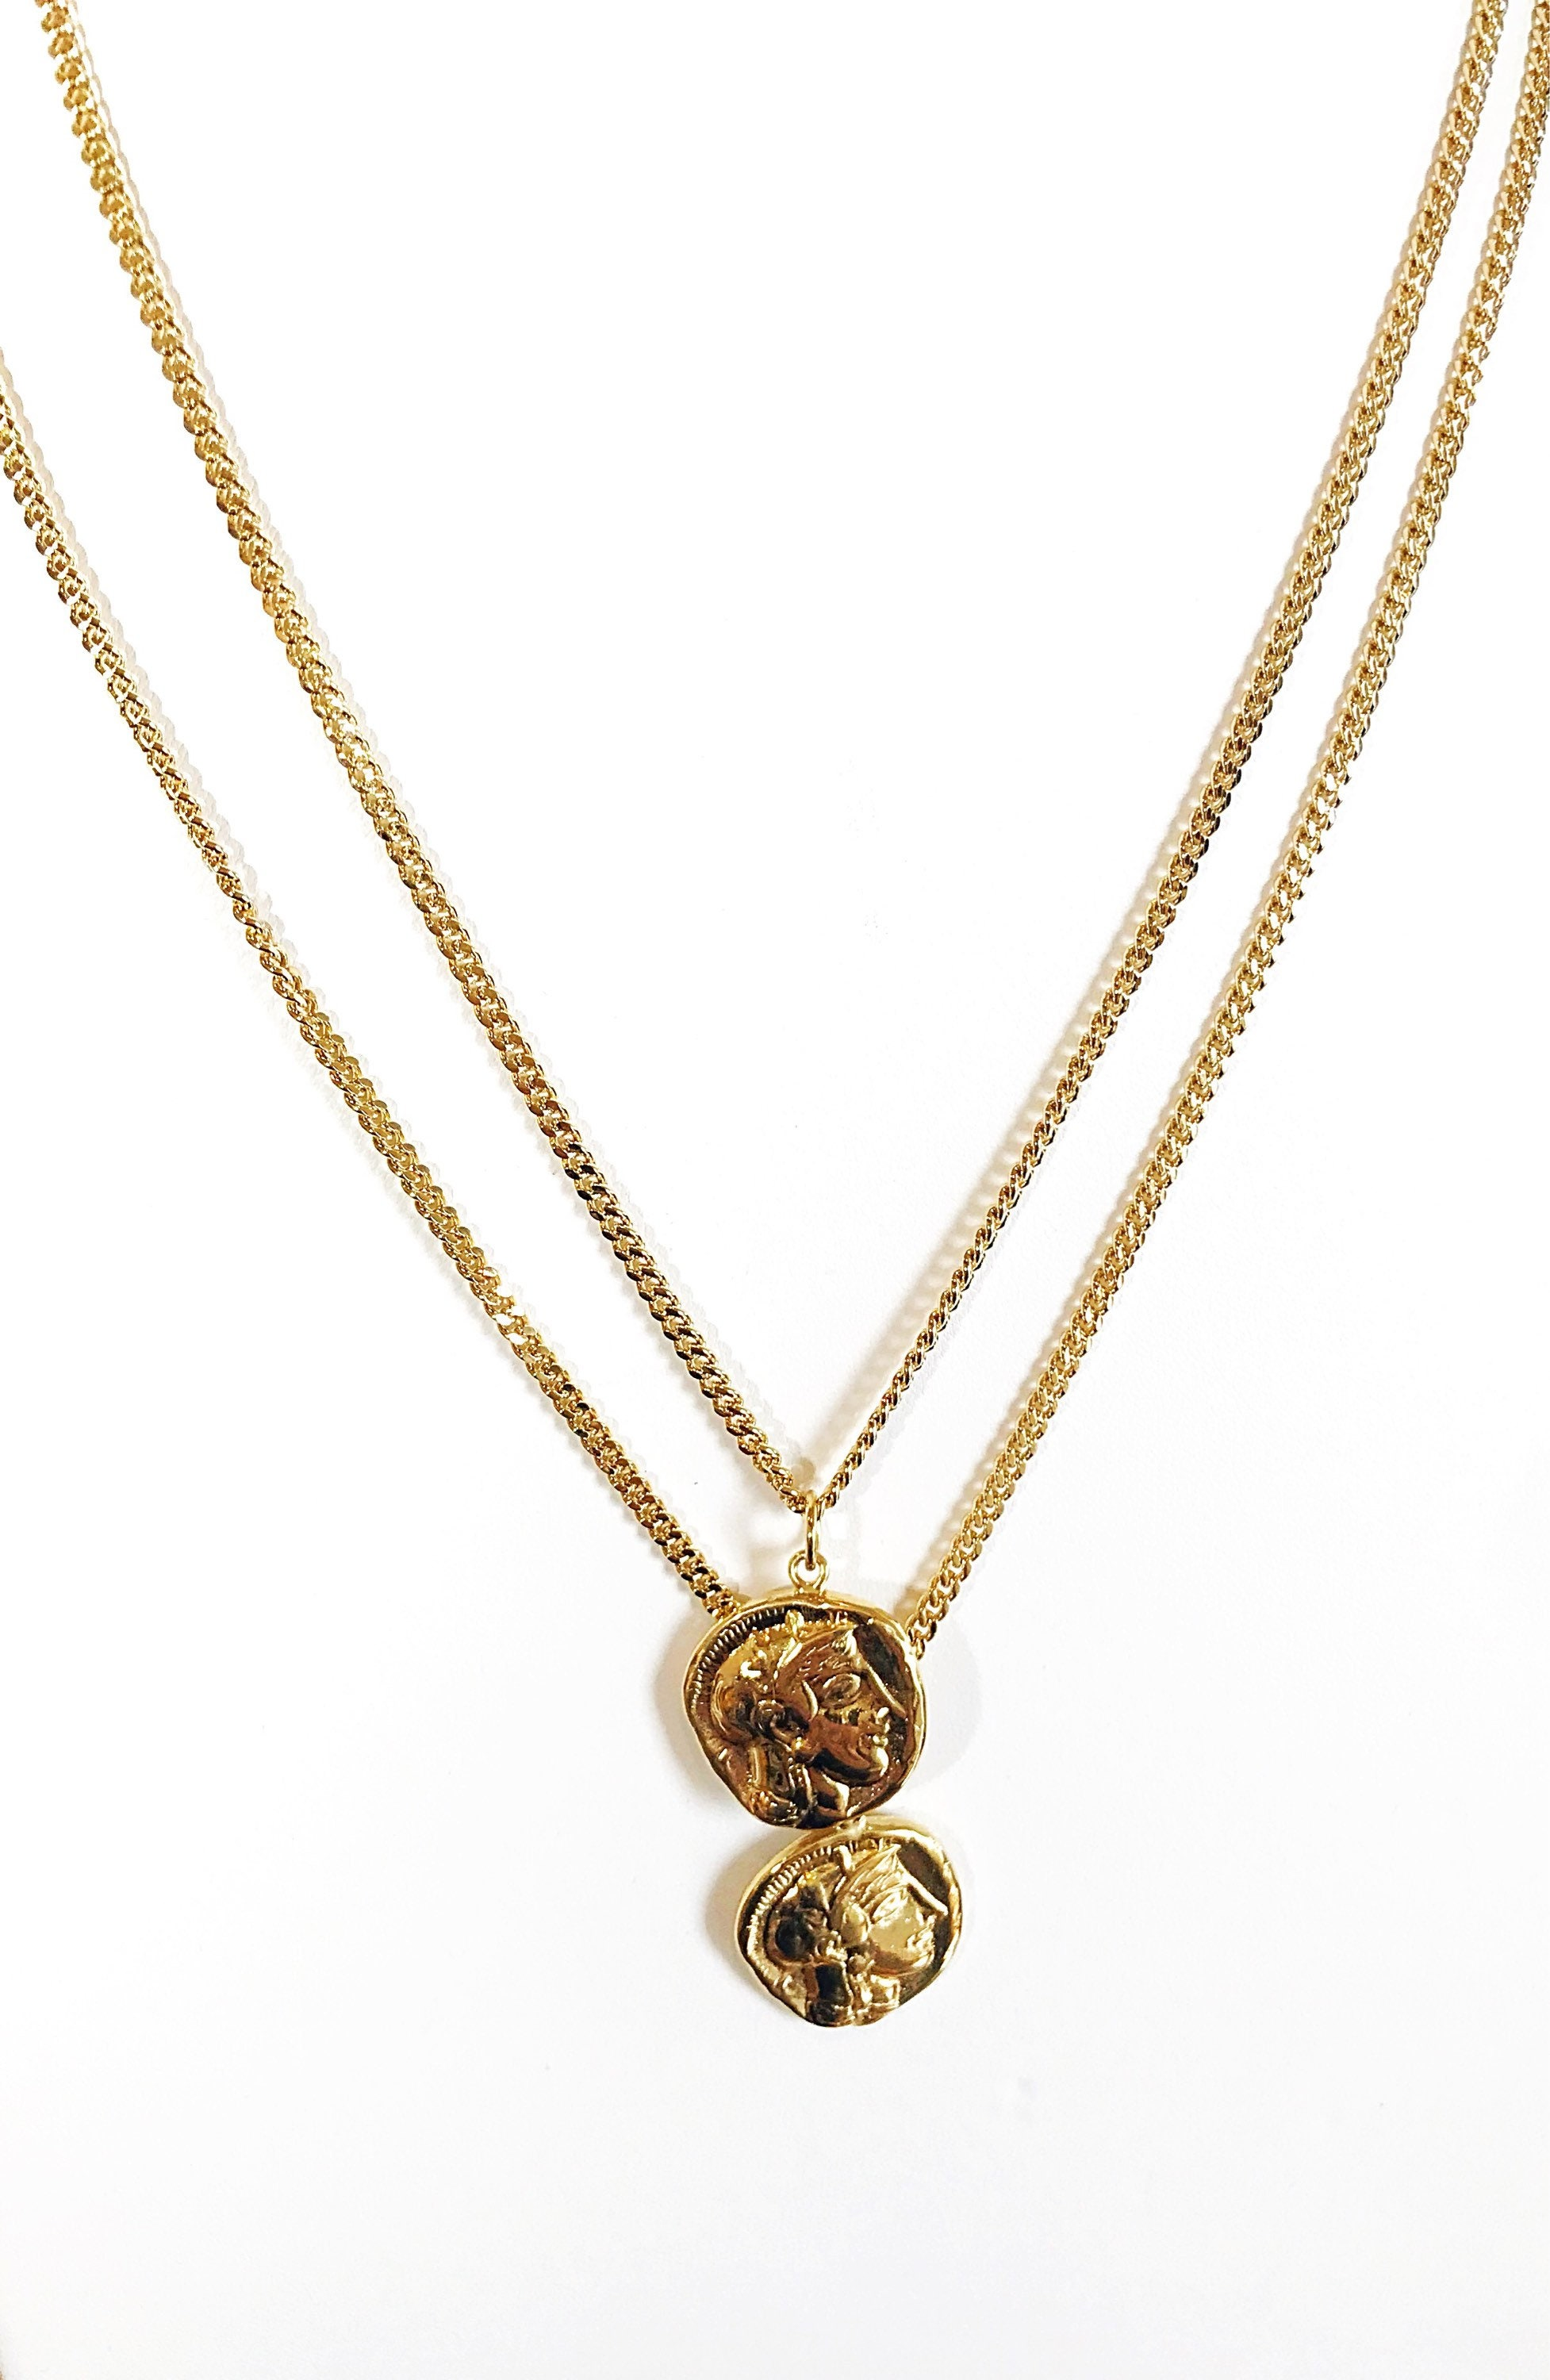 operandi prodigiam large medallion chain lariat tone moda necklace gold by loading close fallon